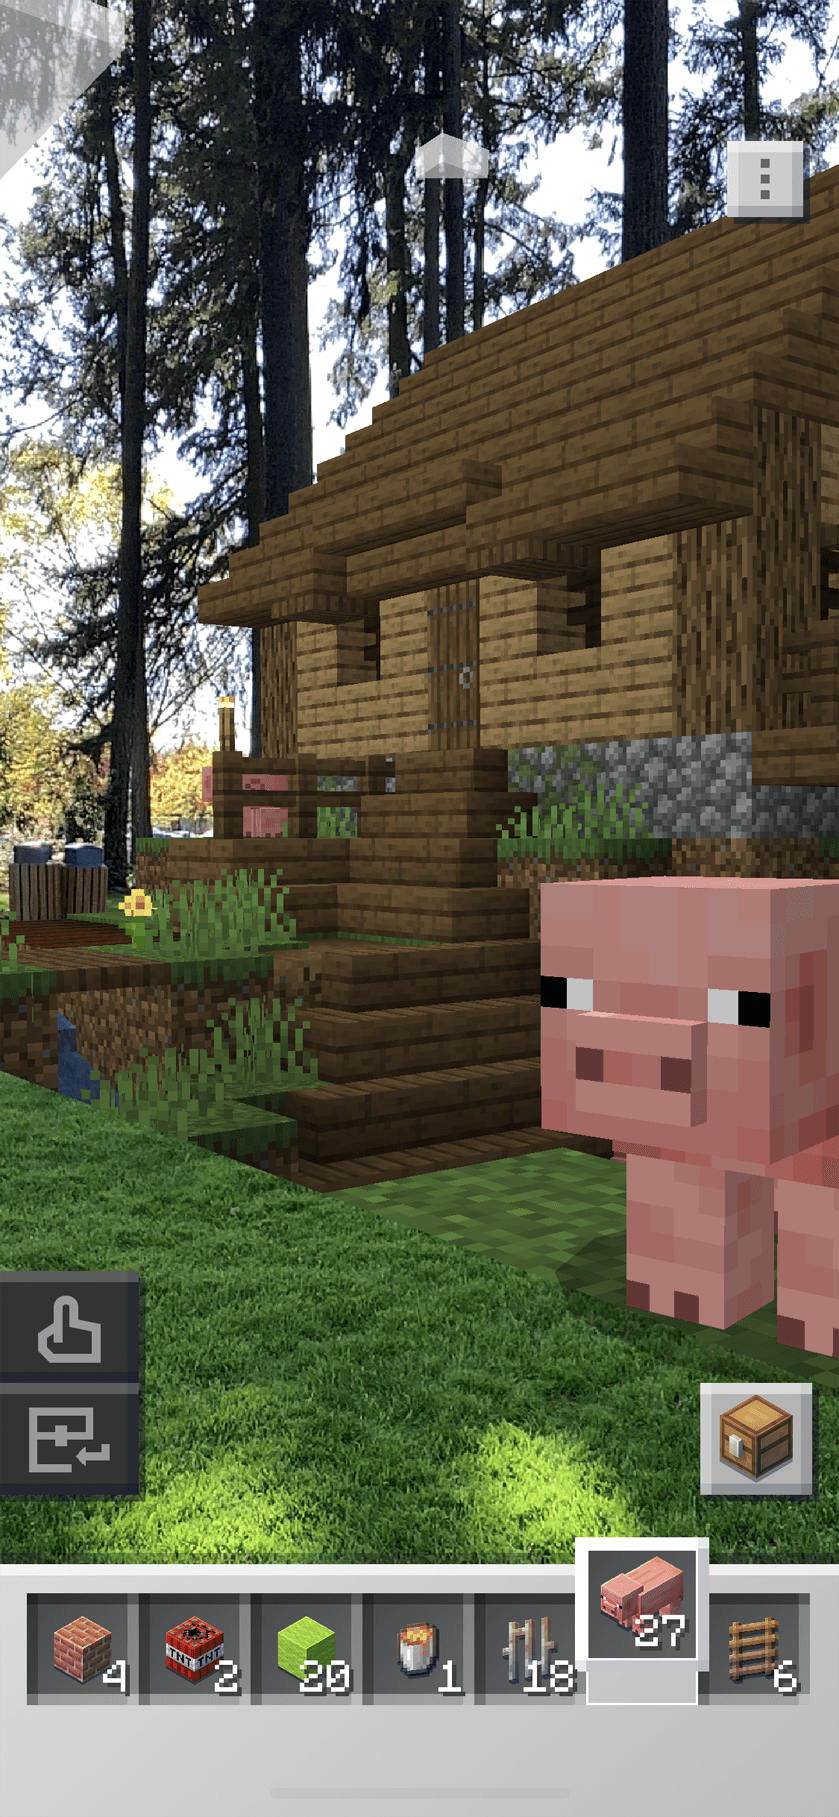 Full size pigs and farms